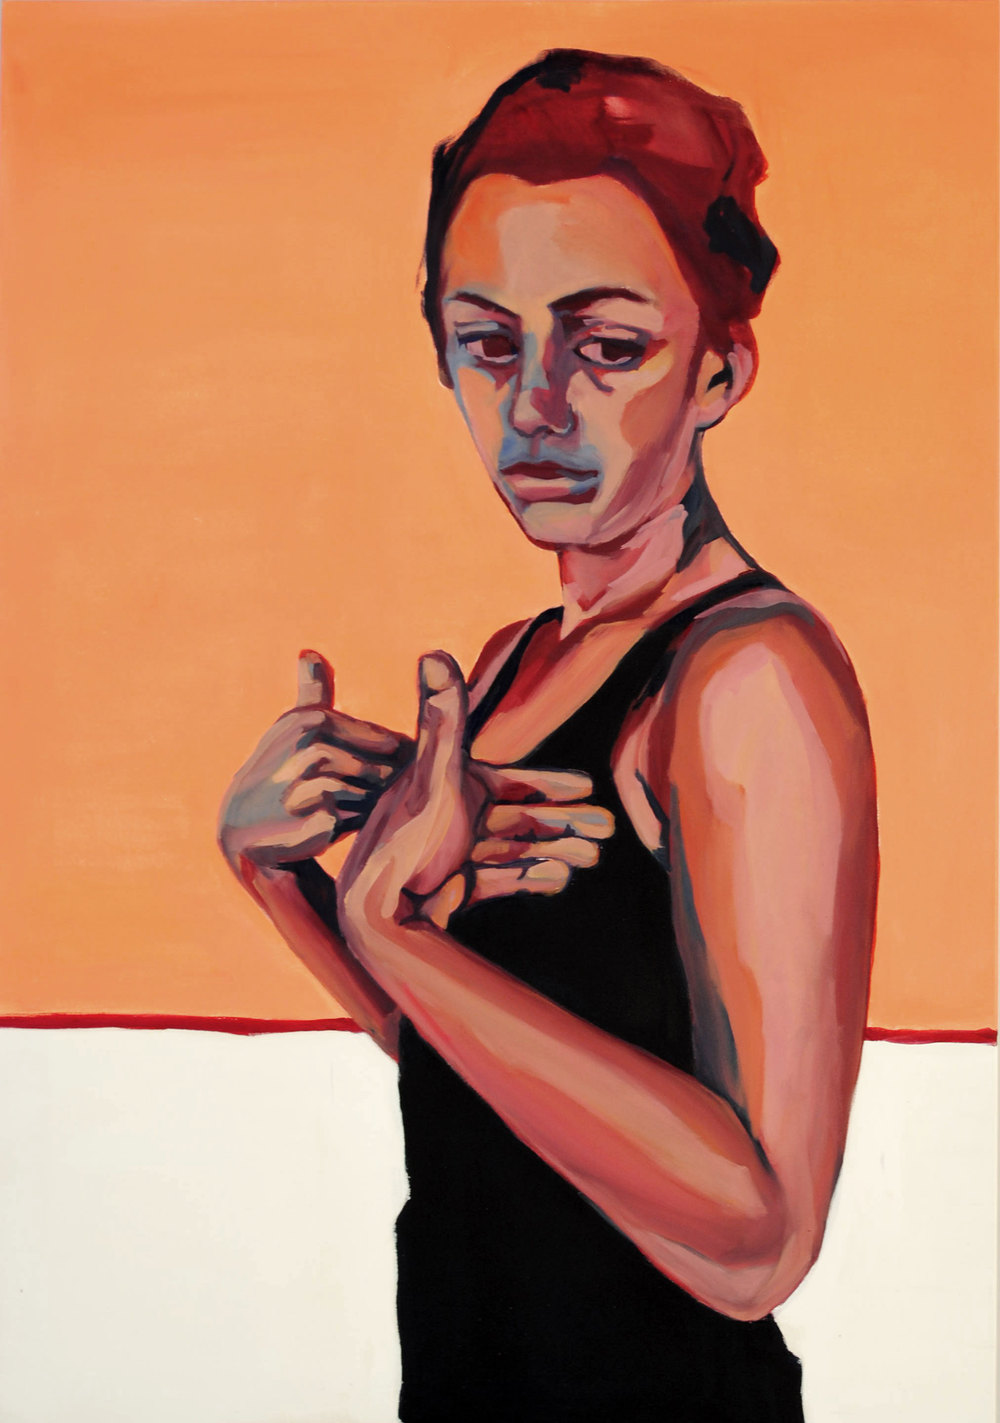 150 x 105 cm, oil on canvas, 2011, private collection